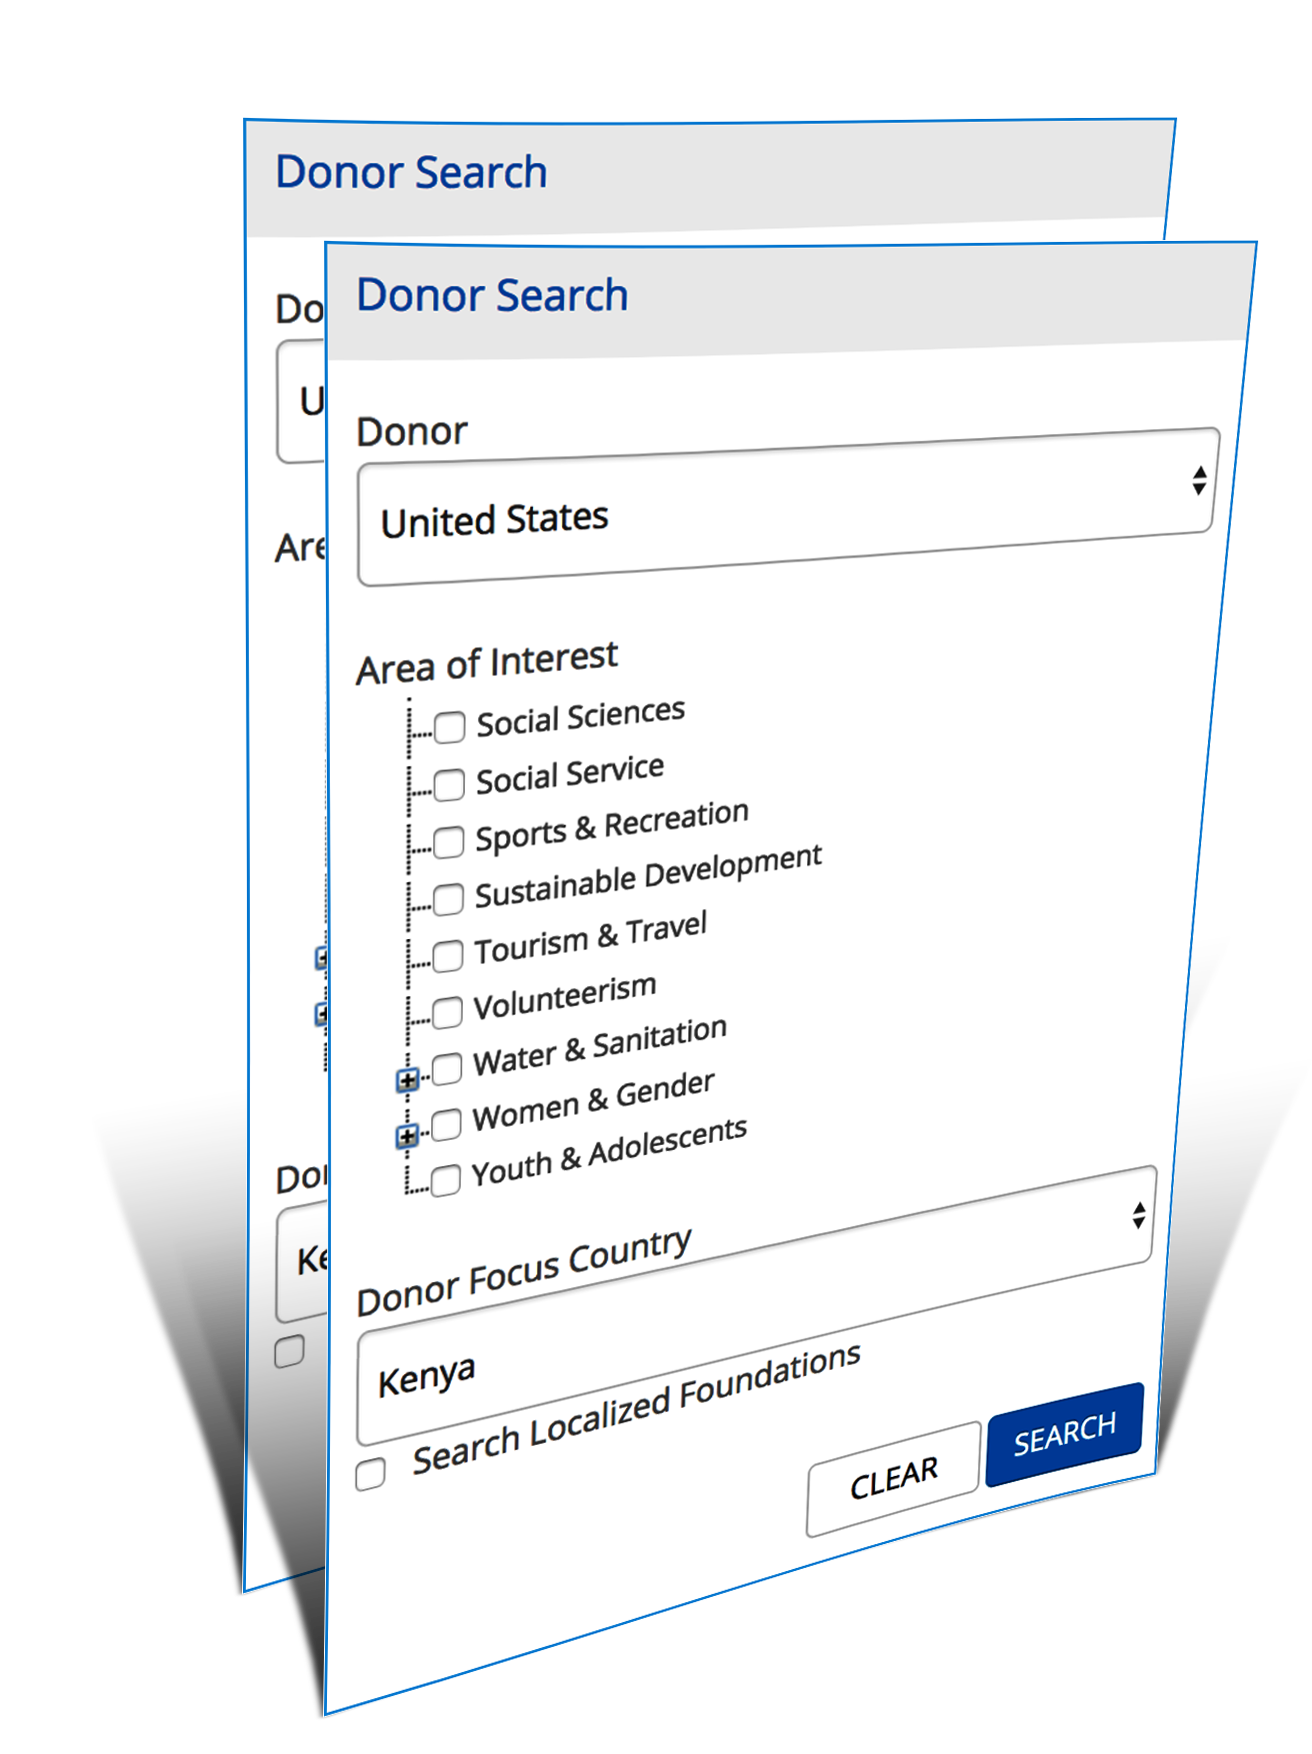 Donor Search